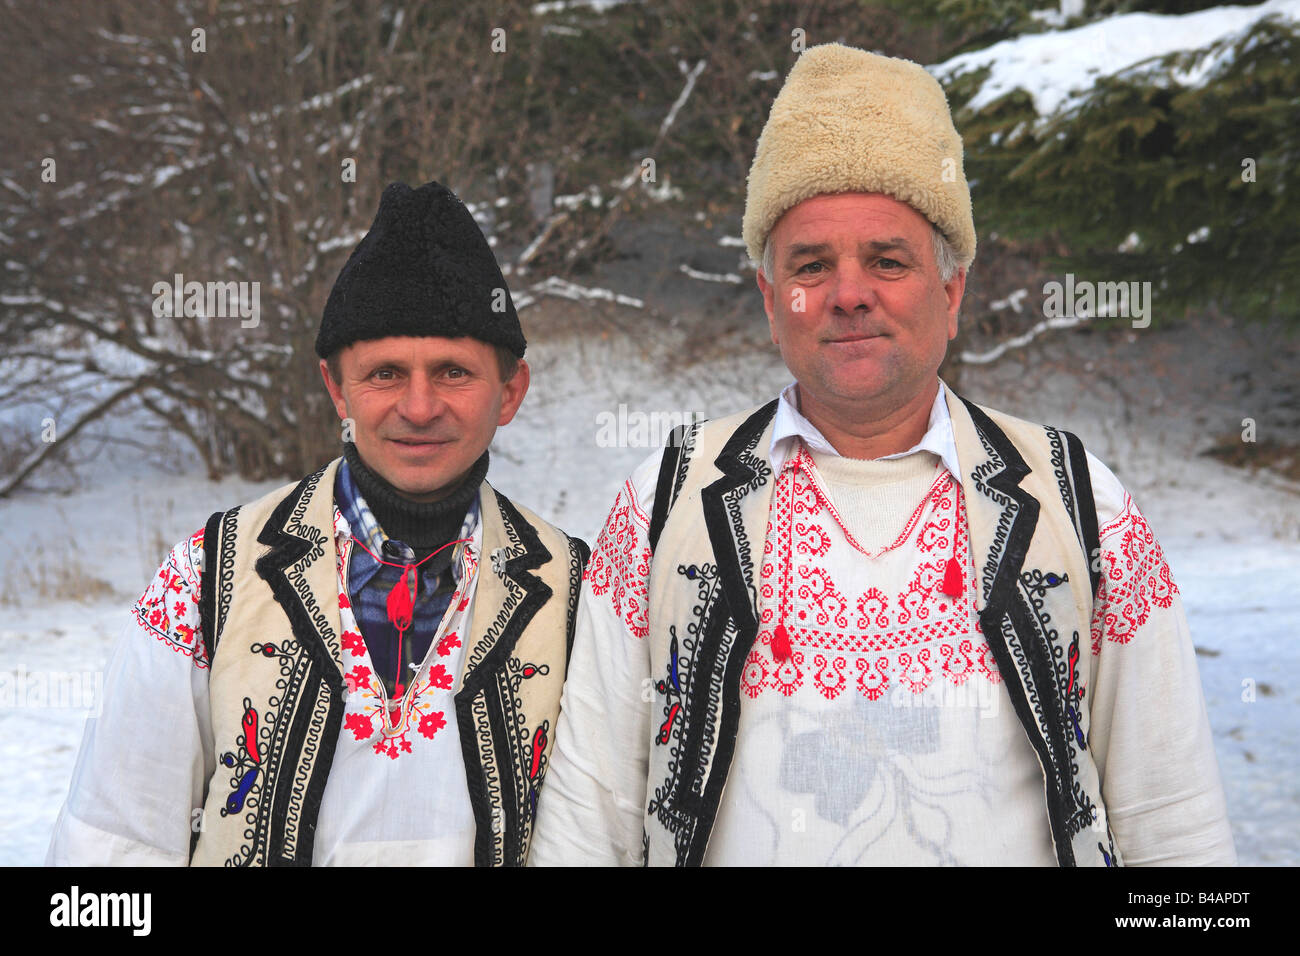 e49690b73 Traditional Transylvanian Dress, Poiana Brasov Stock Photo: 19906148 ...